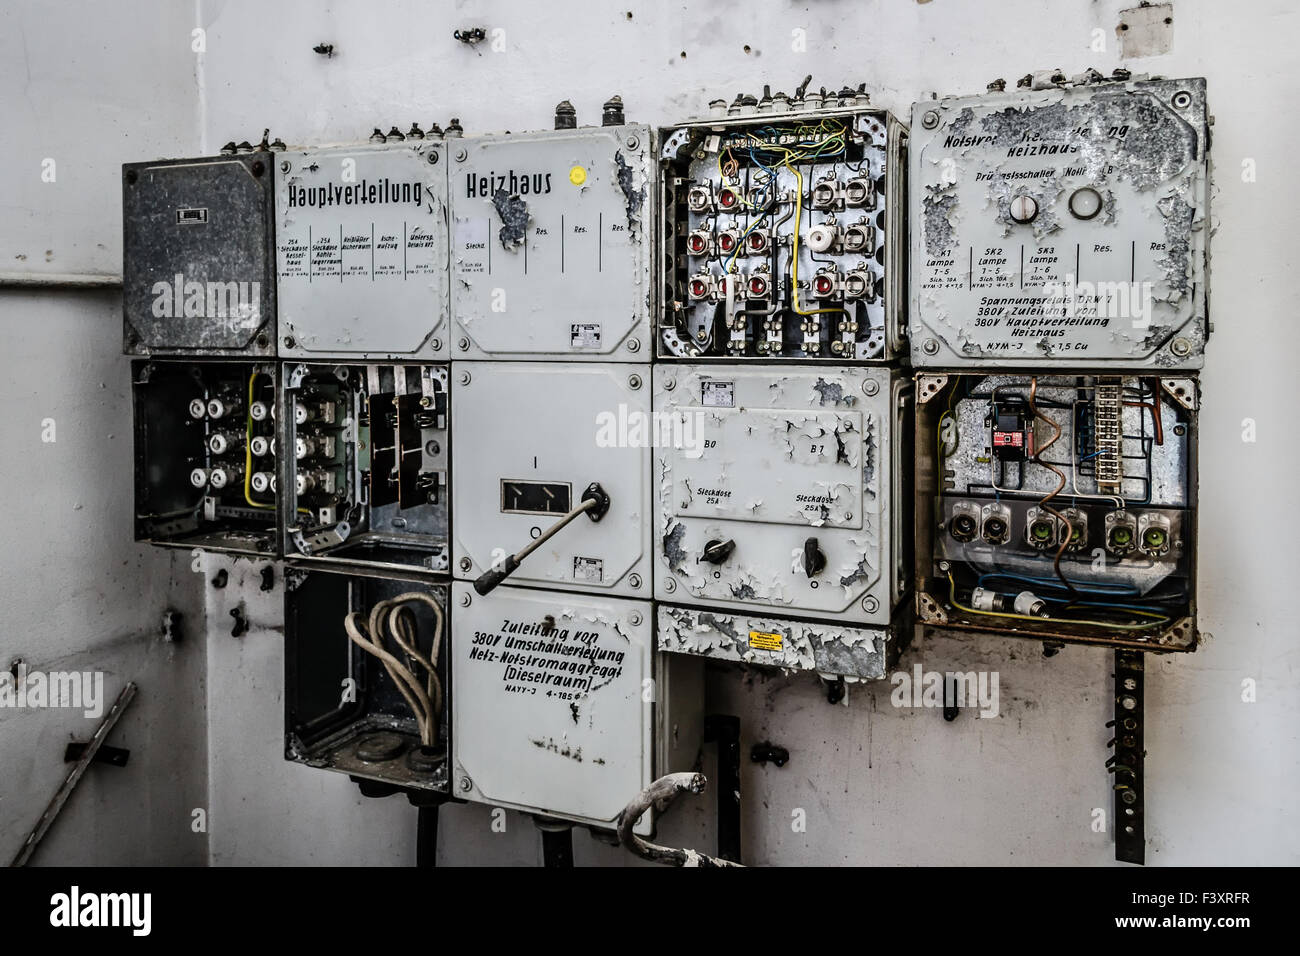 old fuse box stock photo 88485035 alamy rh alamy com old fuse box hacks old fuse box types